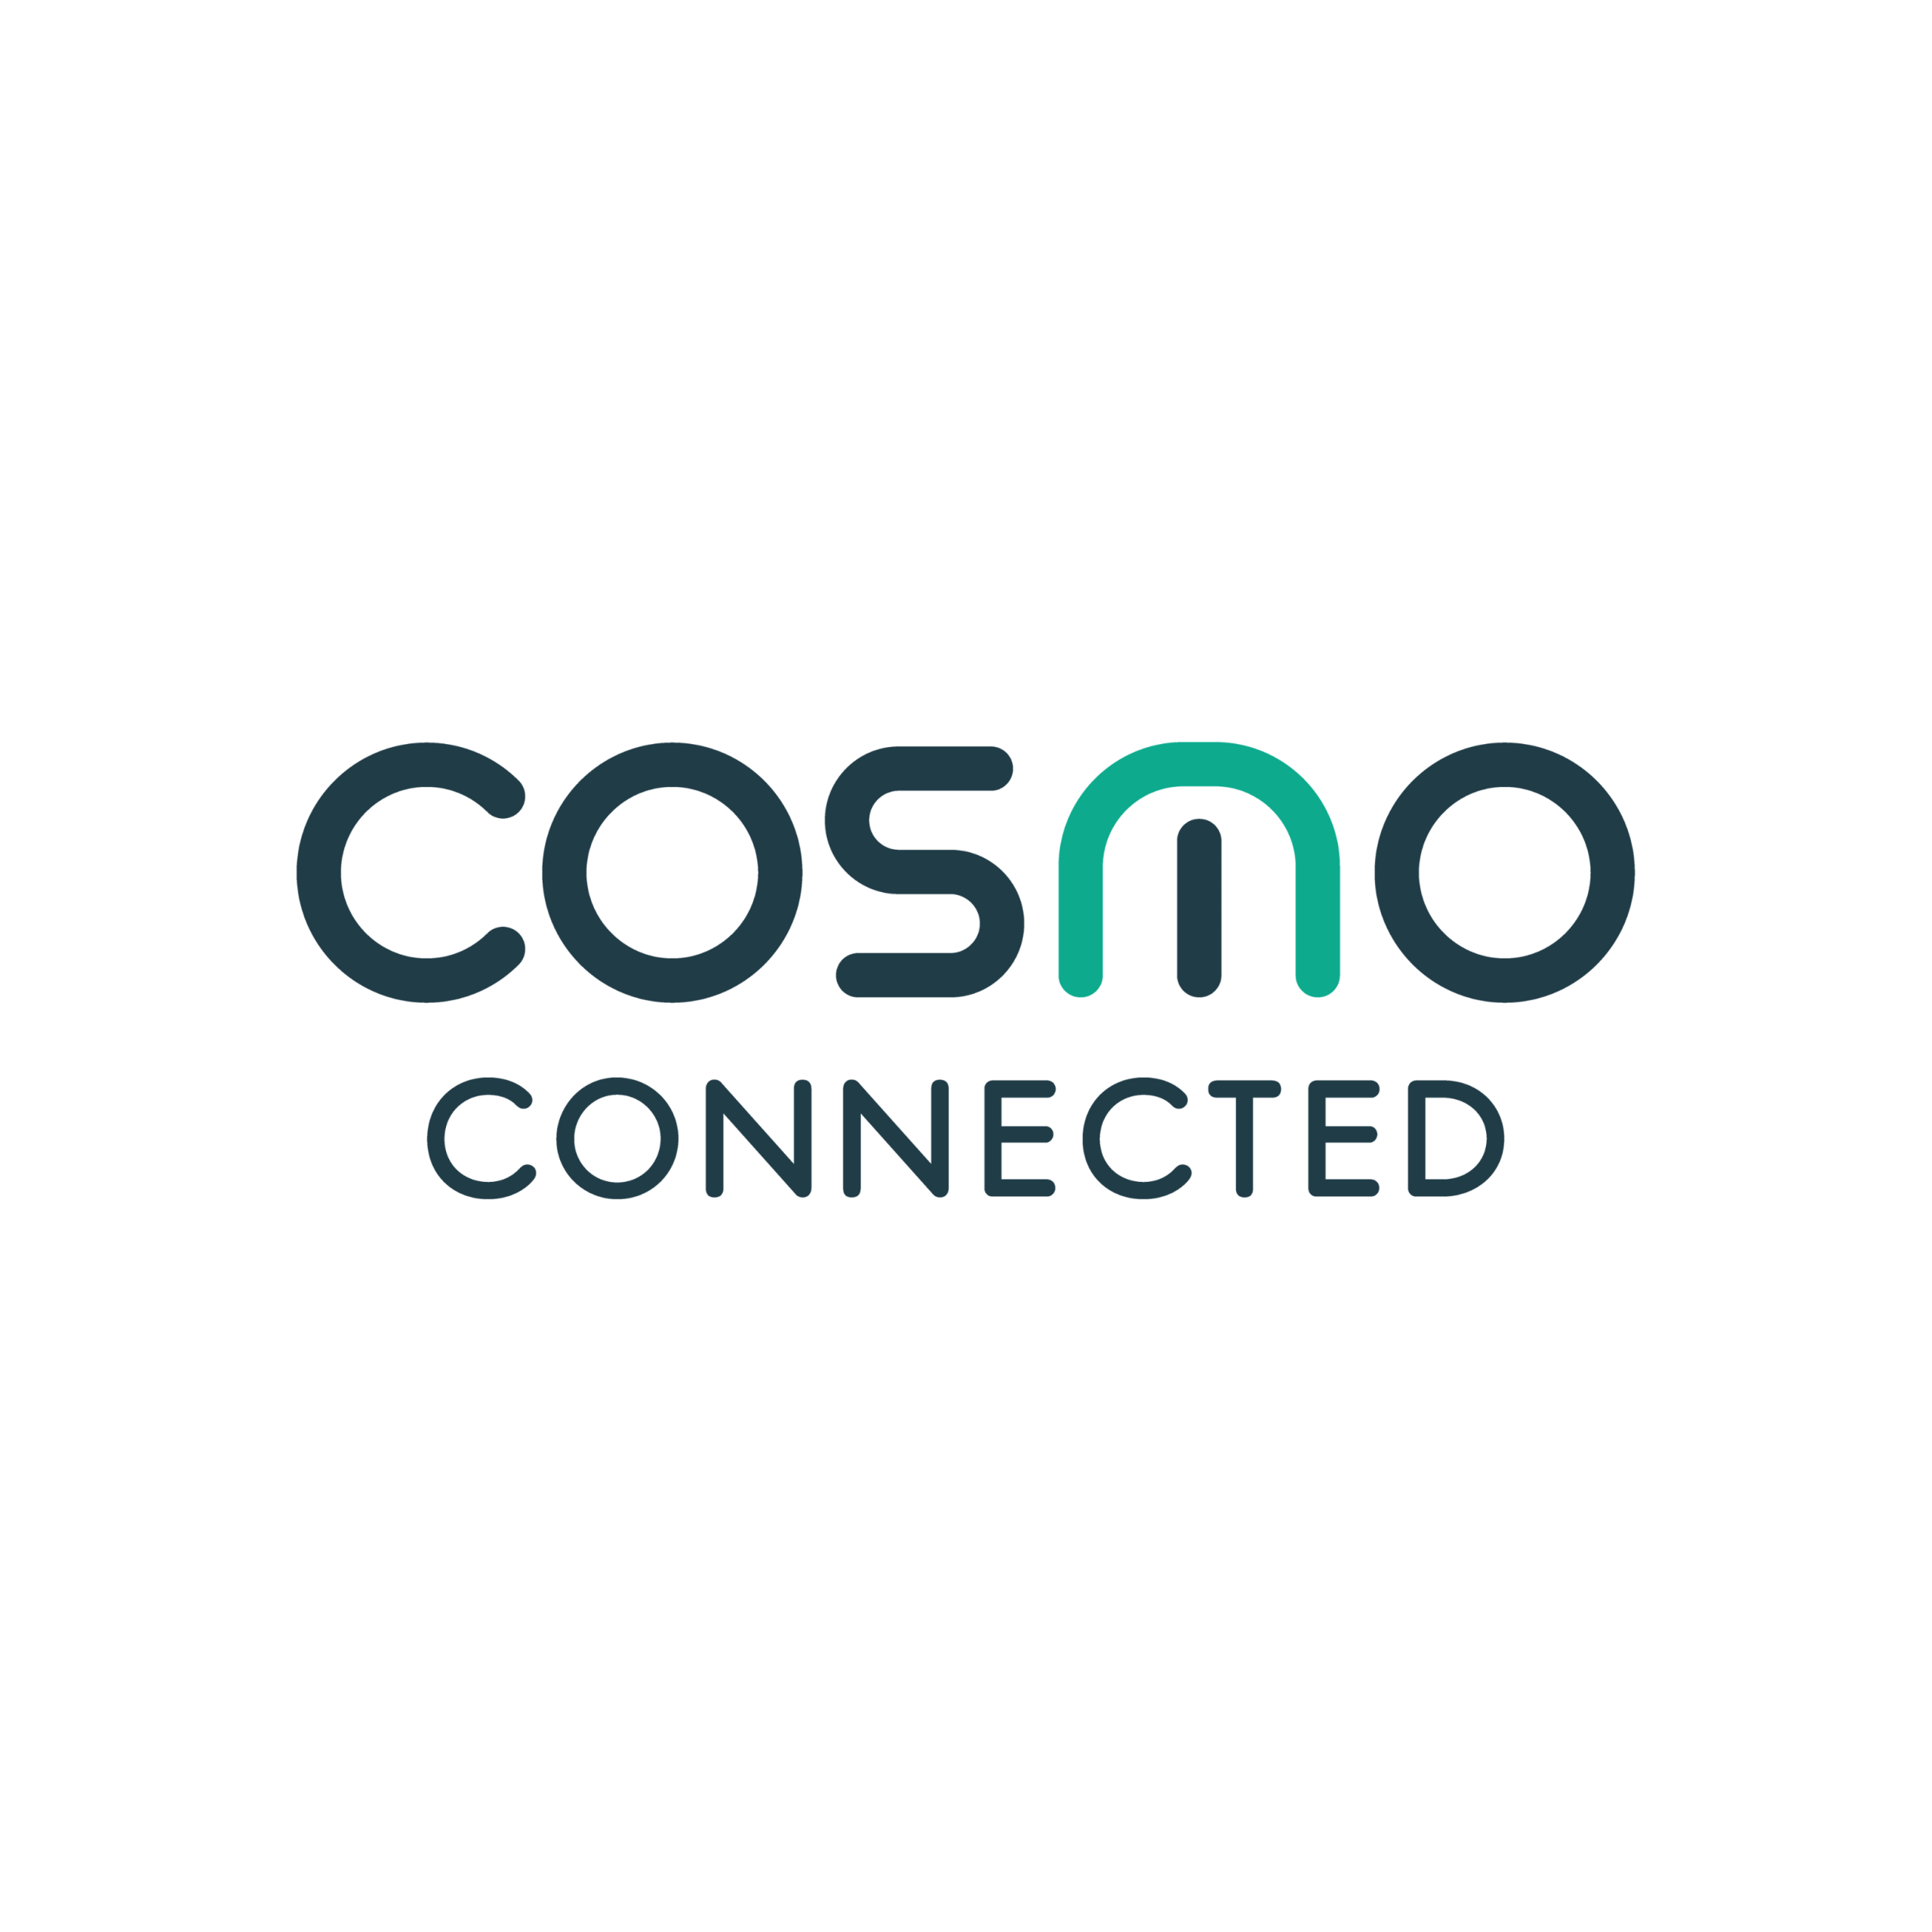 Cosmo connected png